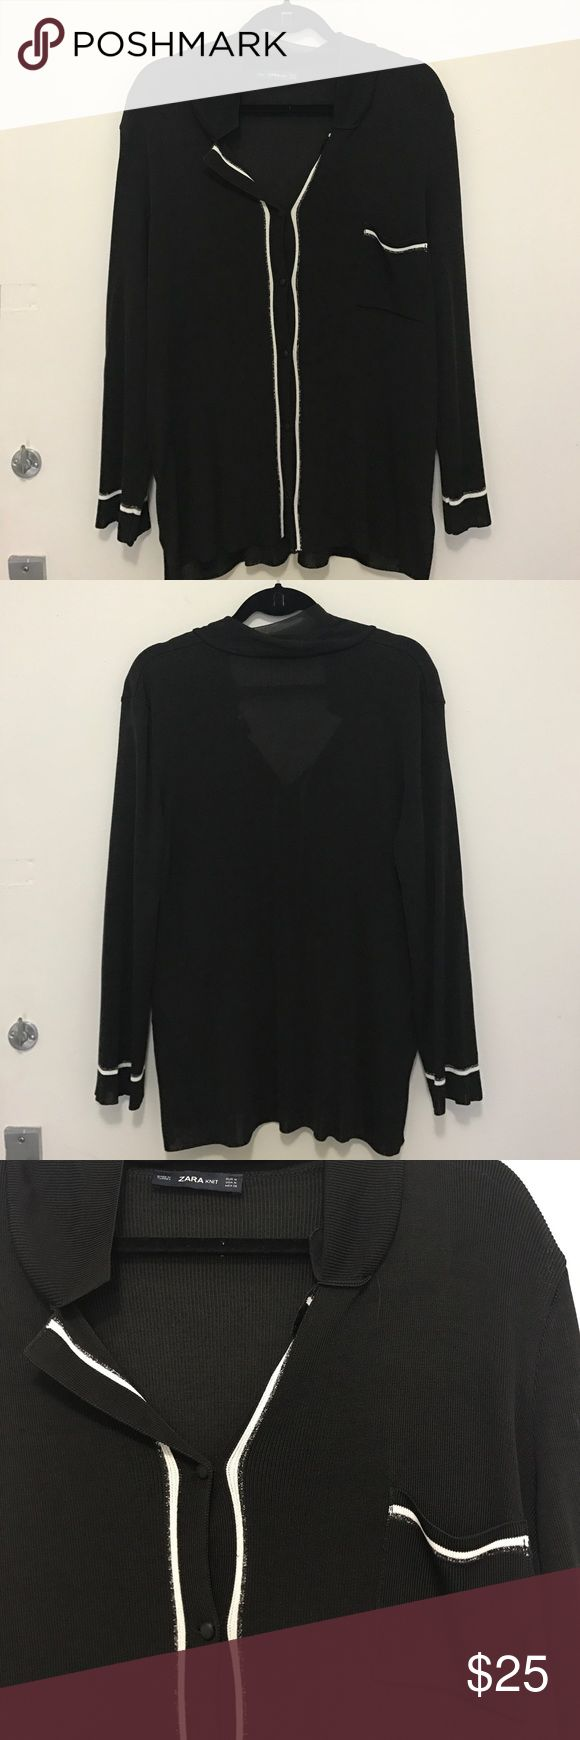 NWOT Zara Black Blouse with White Detail NWOT Zara Black Blouse with White Detail and a hint of sparkle! Never been worn. Can be worn up or down, with buttons open or closed! Zara Tops Button Down Shirts